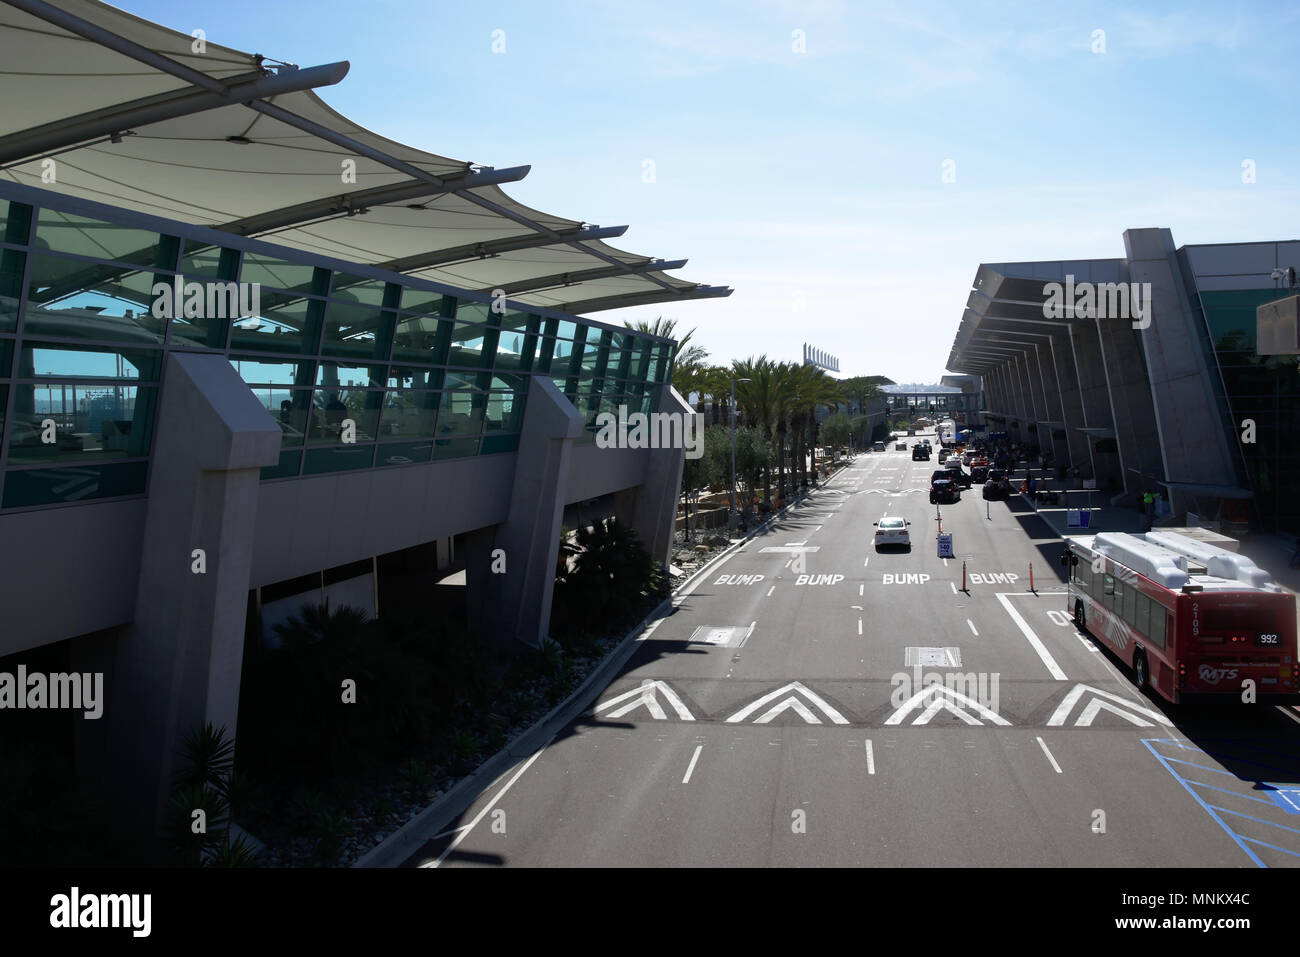 Arrival area of San Diego Airport - Stock Image